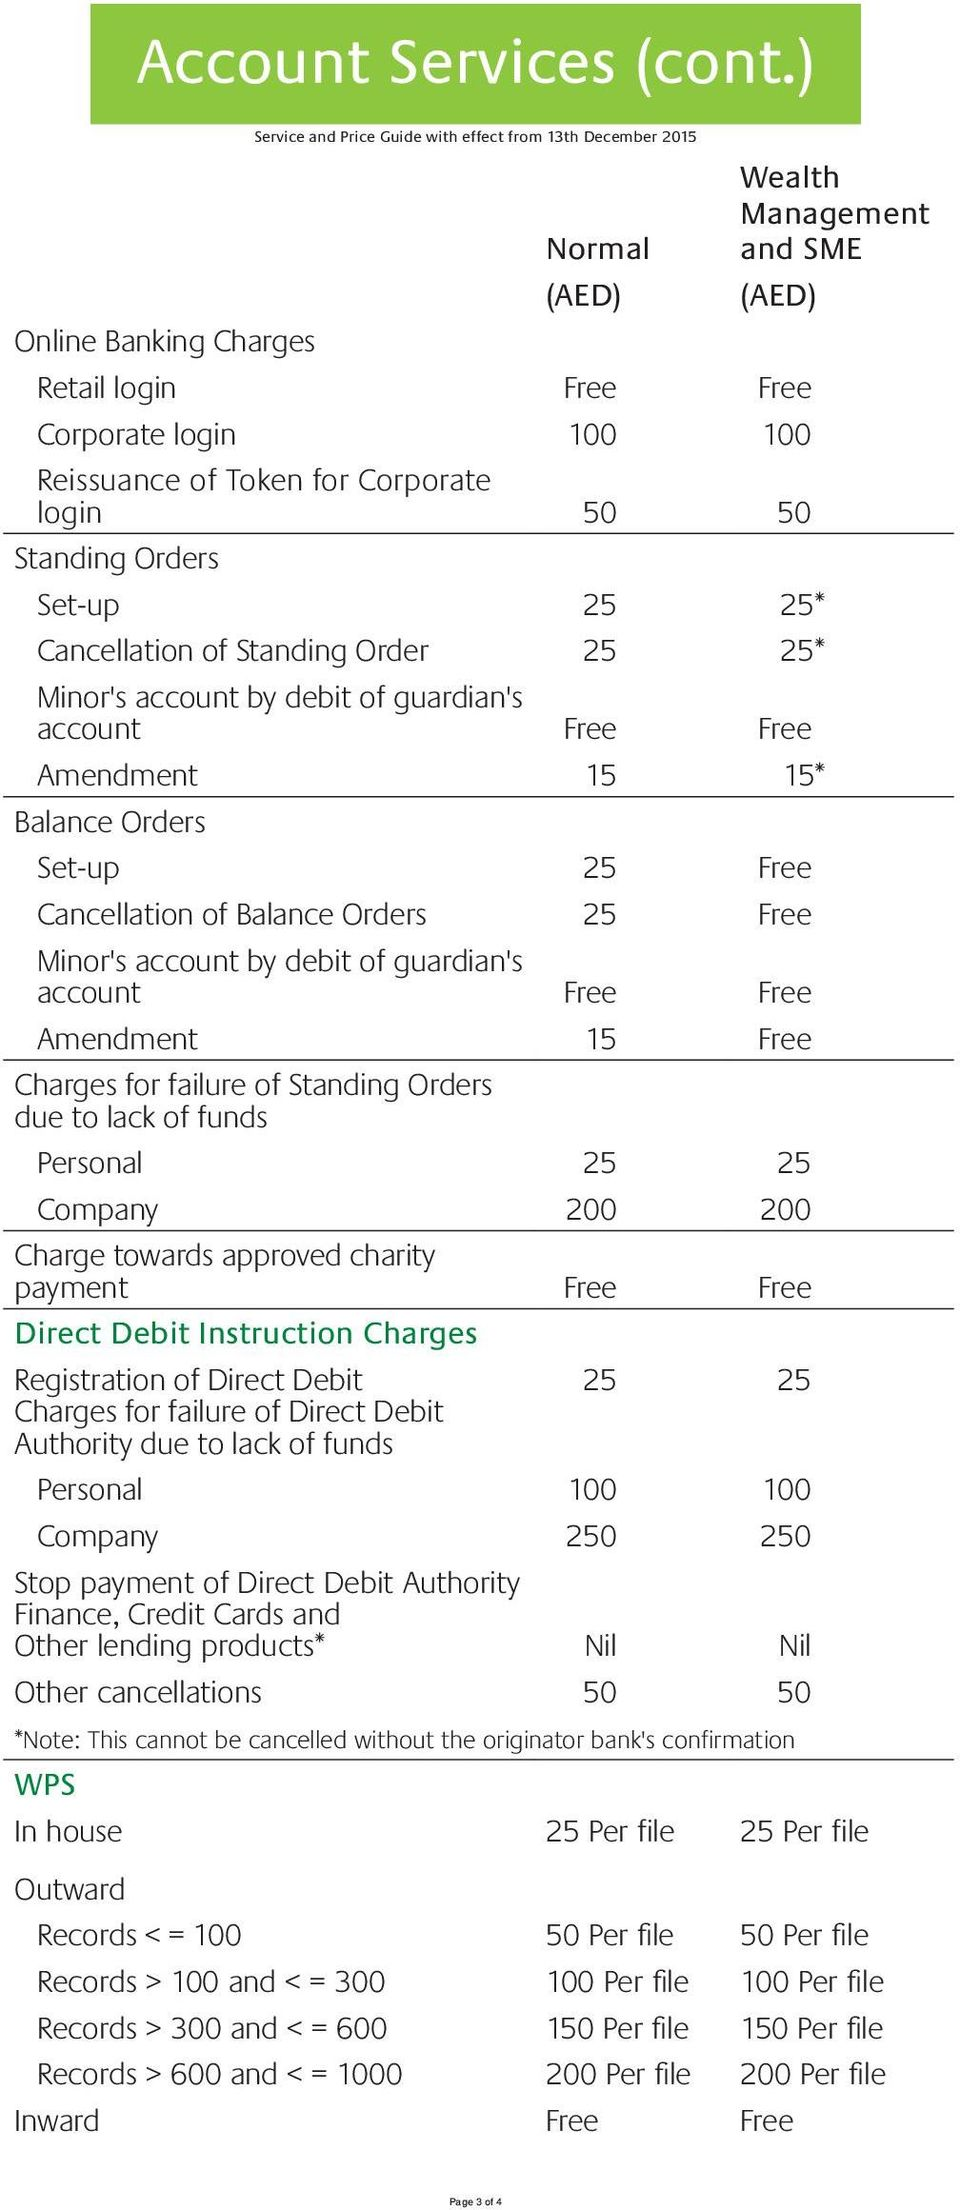 Account Services  Service and Price Guide with effect from 13th